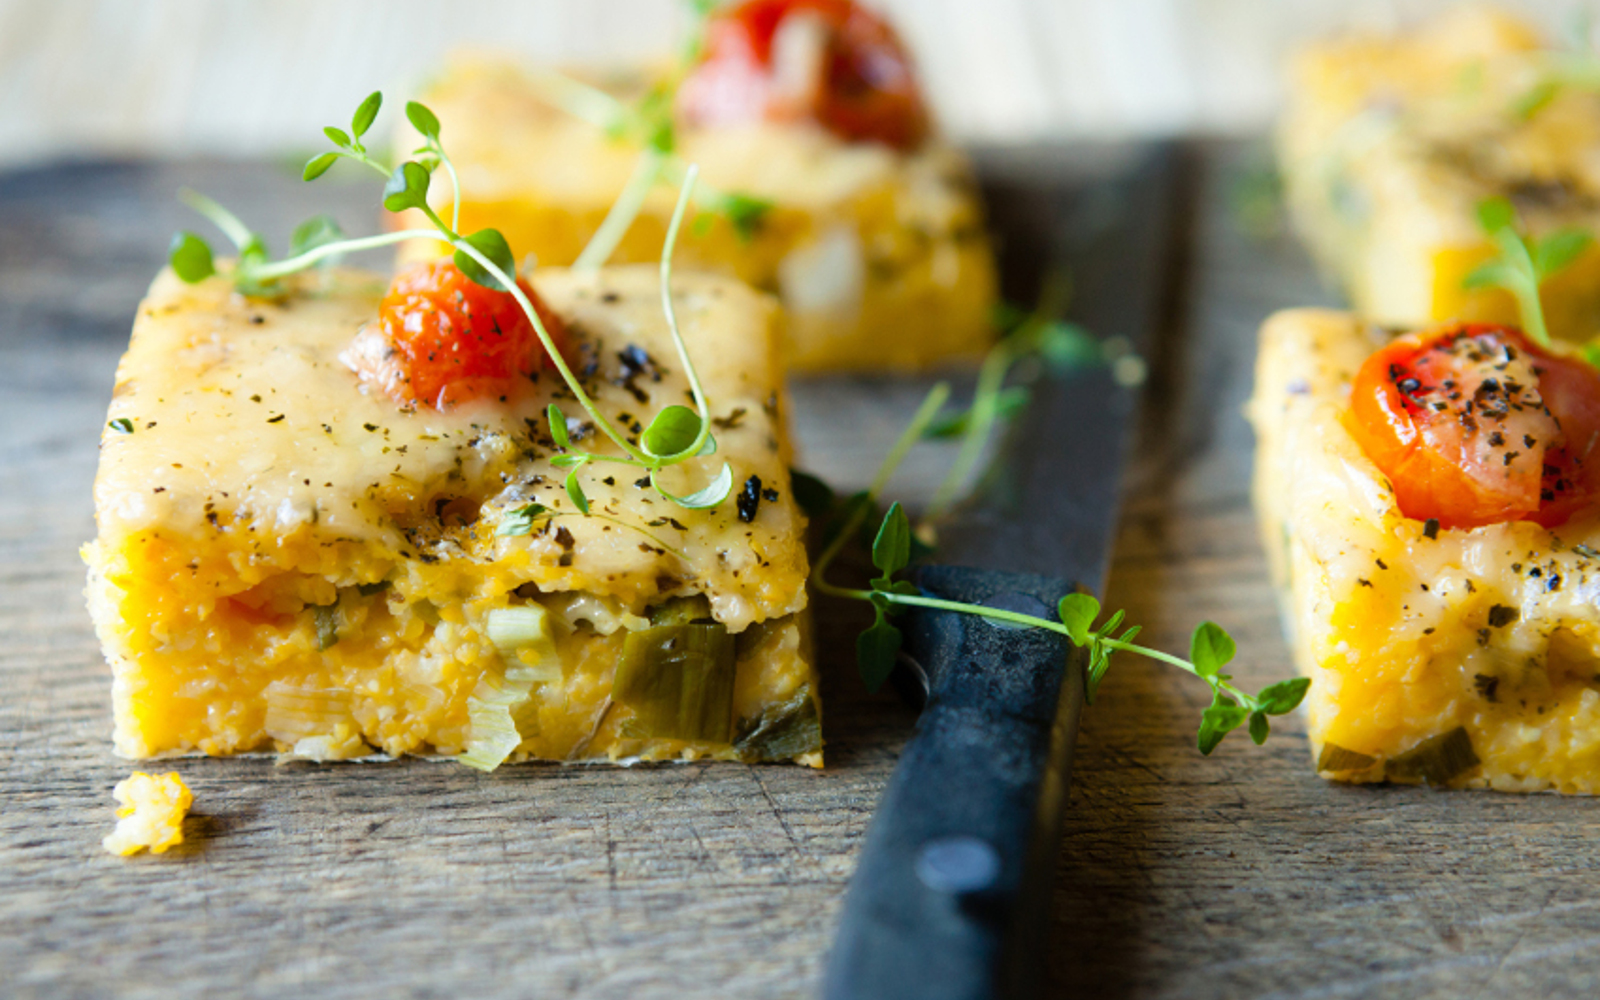 Baked Herbed Polenta With Pesto